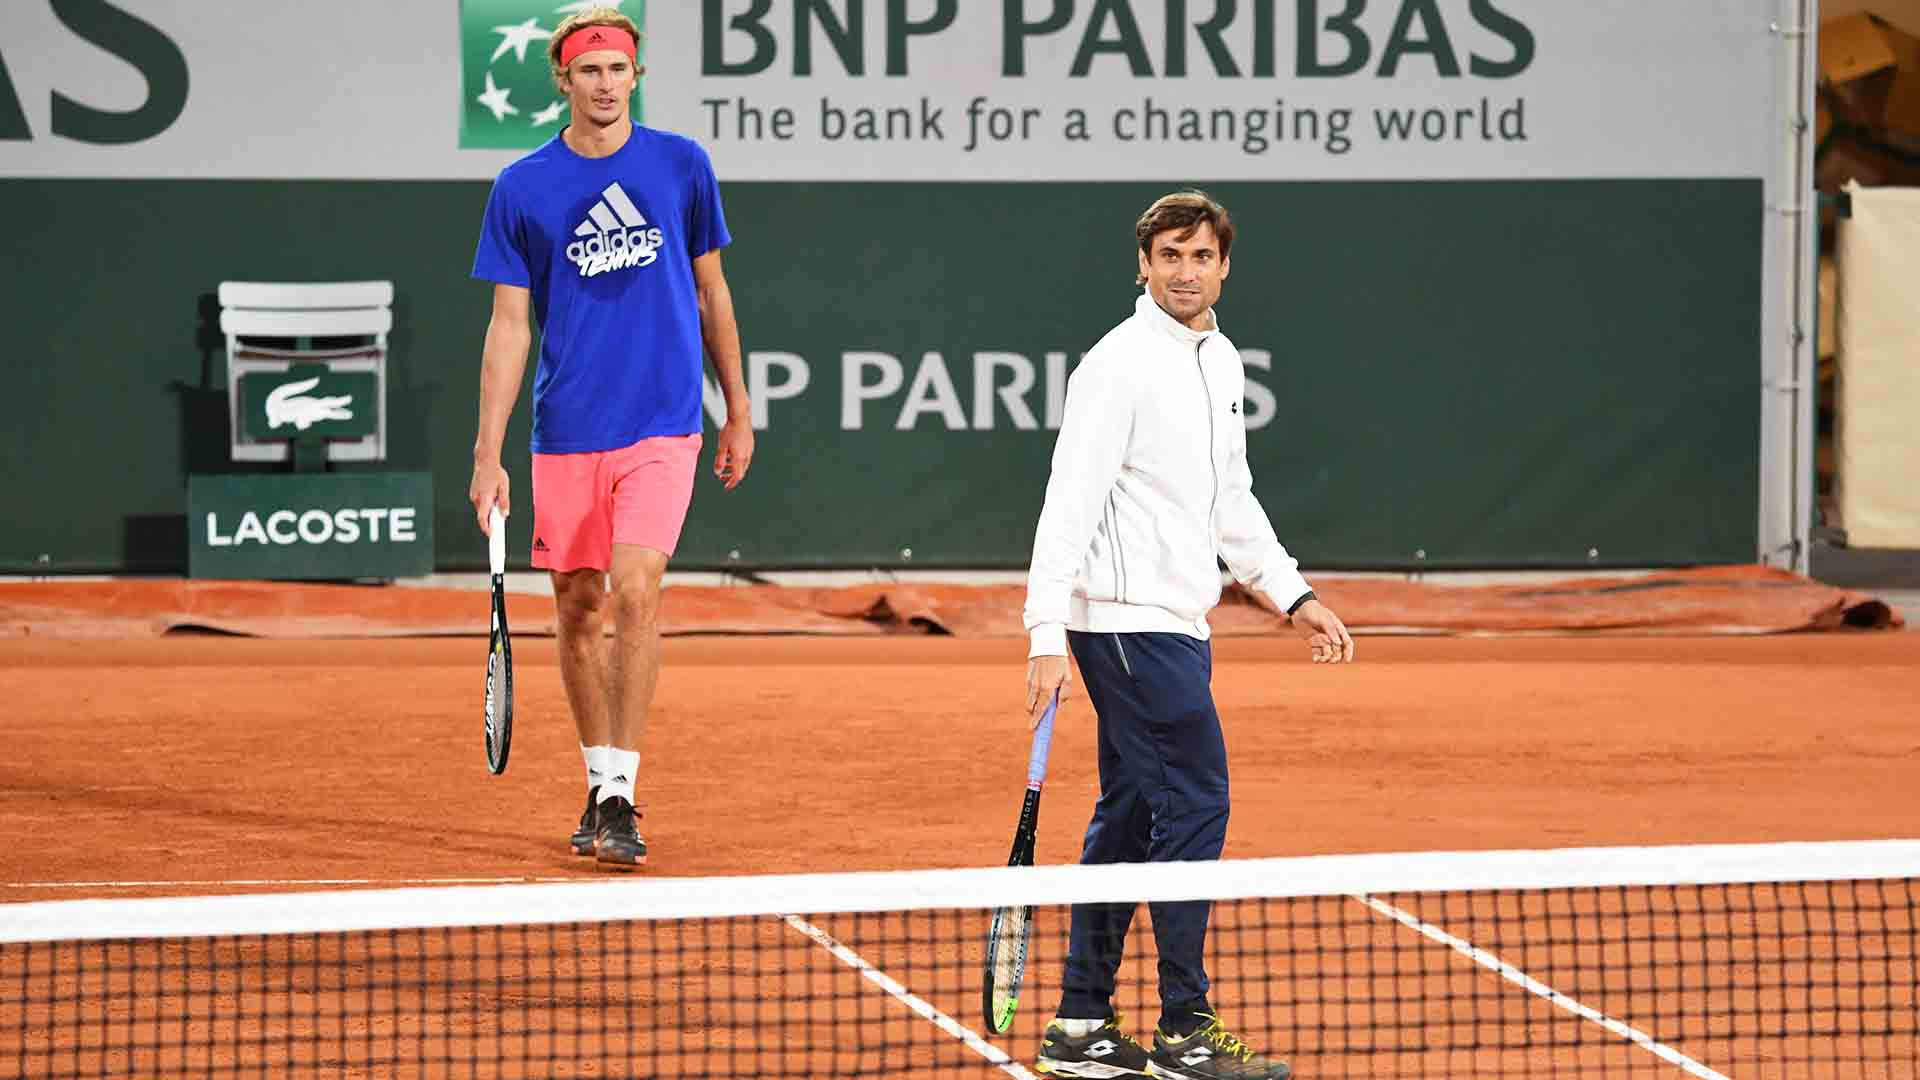 Alexander Zverev practises with new coach David Ferrer ahead of his fifth consecutive main draw appearance at Roland Garros.